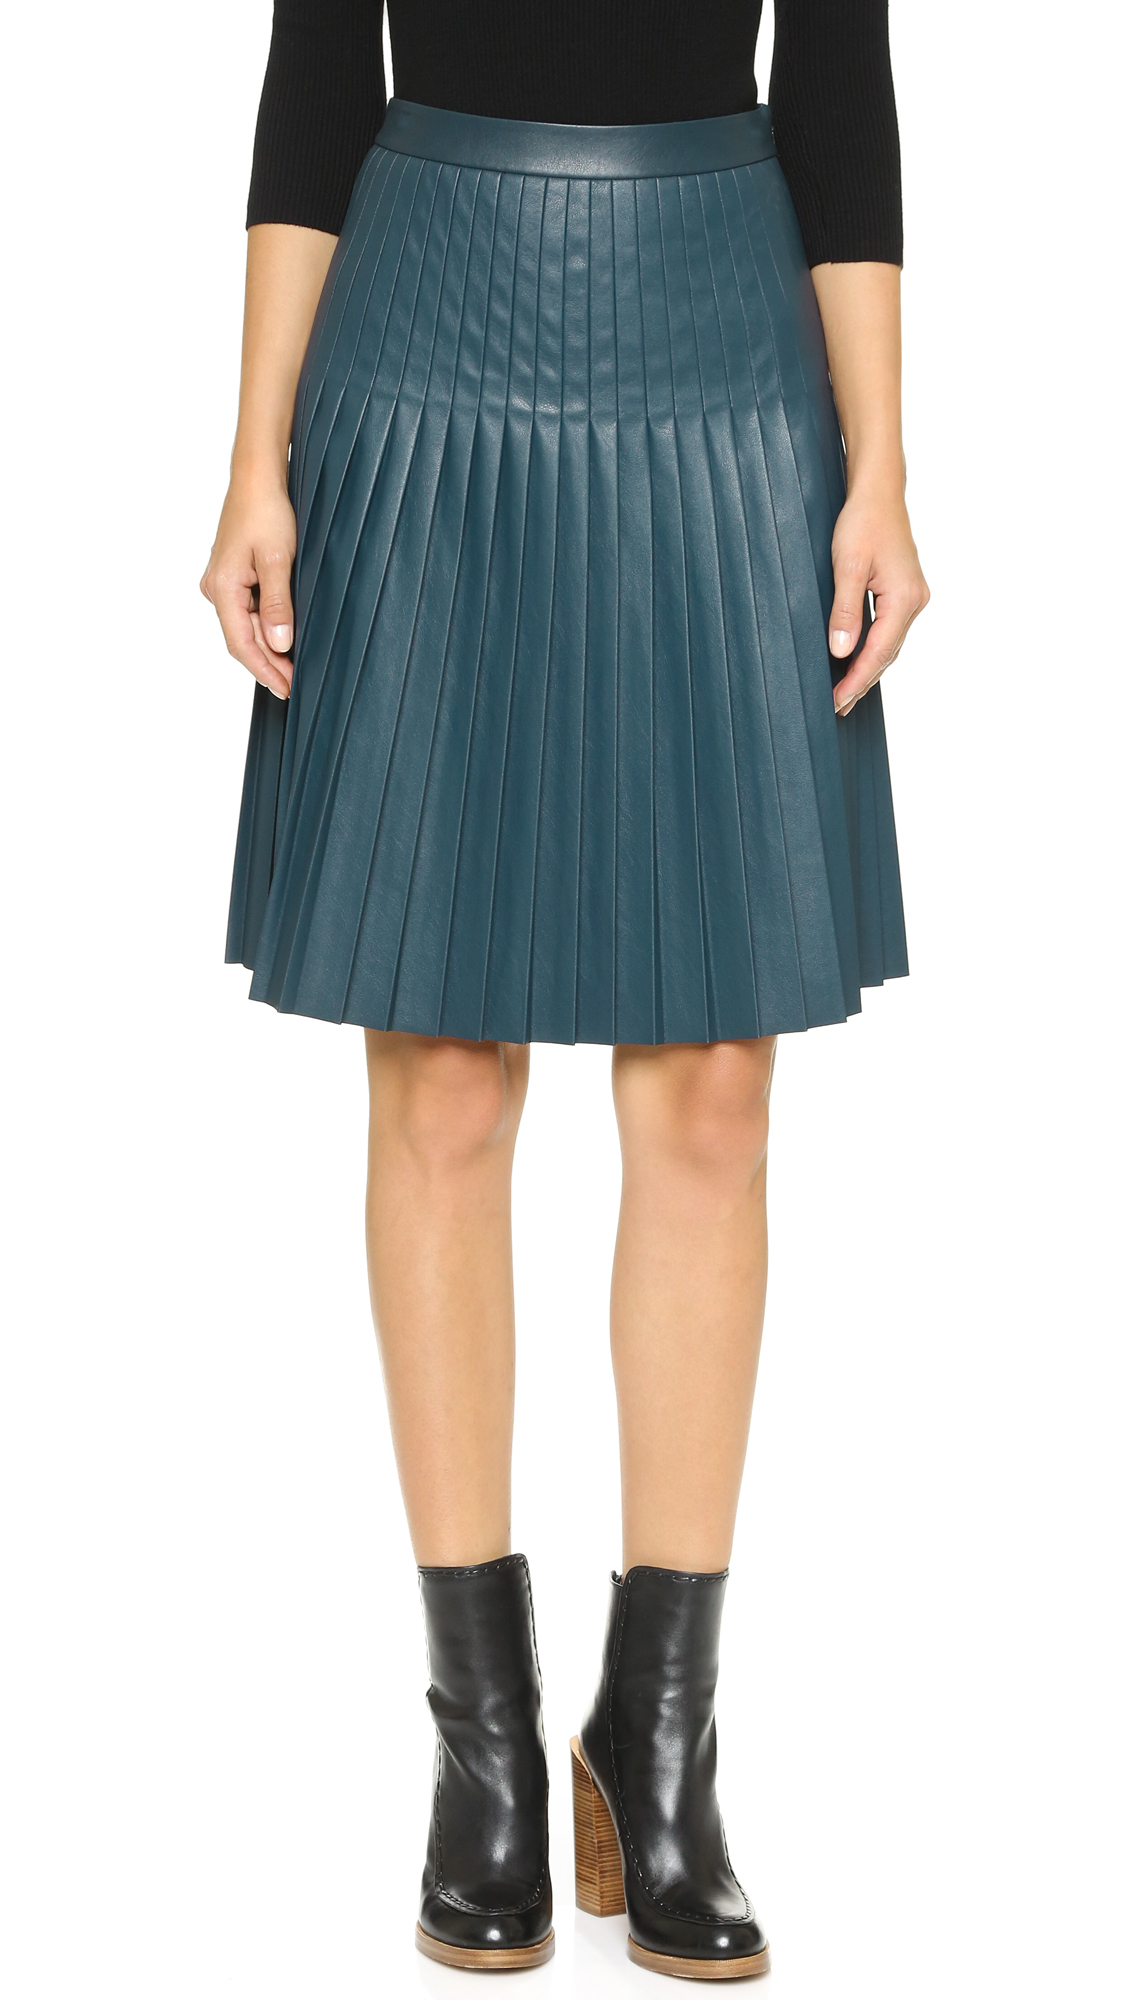 f470c0a60e Rebecca Taylor Faux Leather Pleated Skirt - Teal in Blue - Lyst